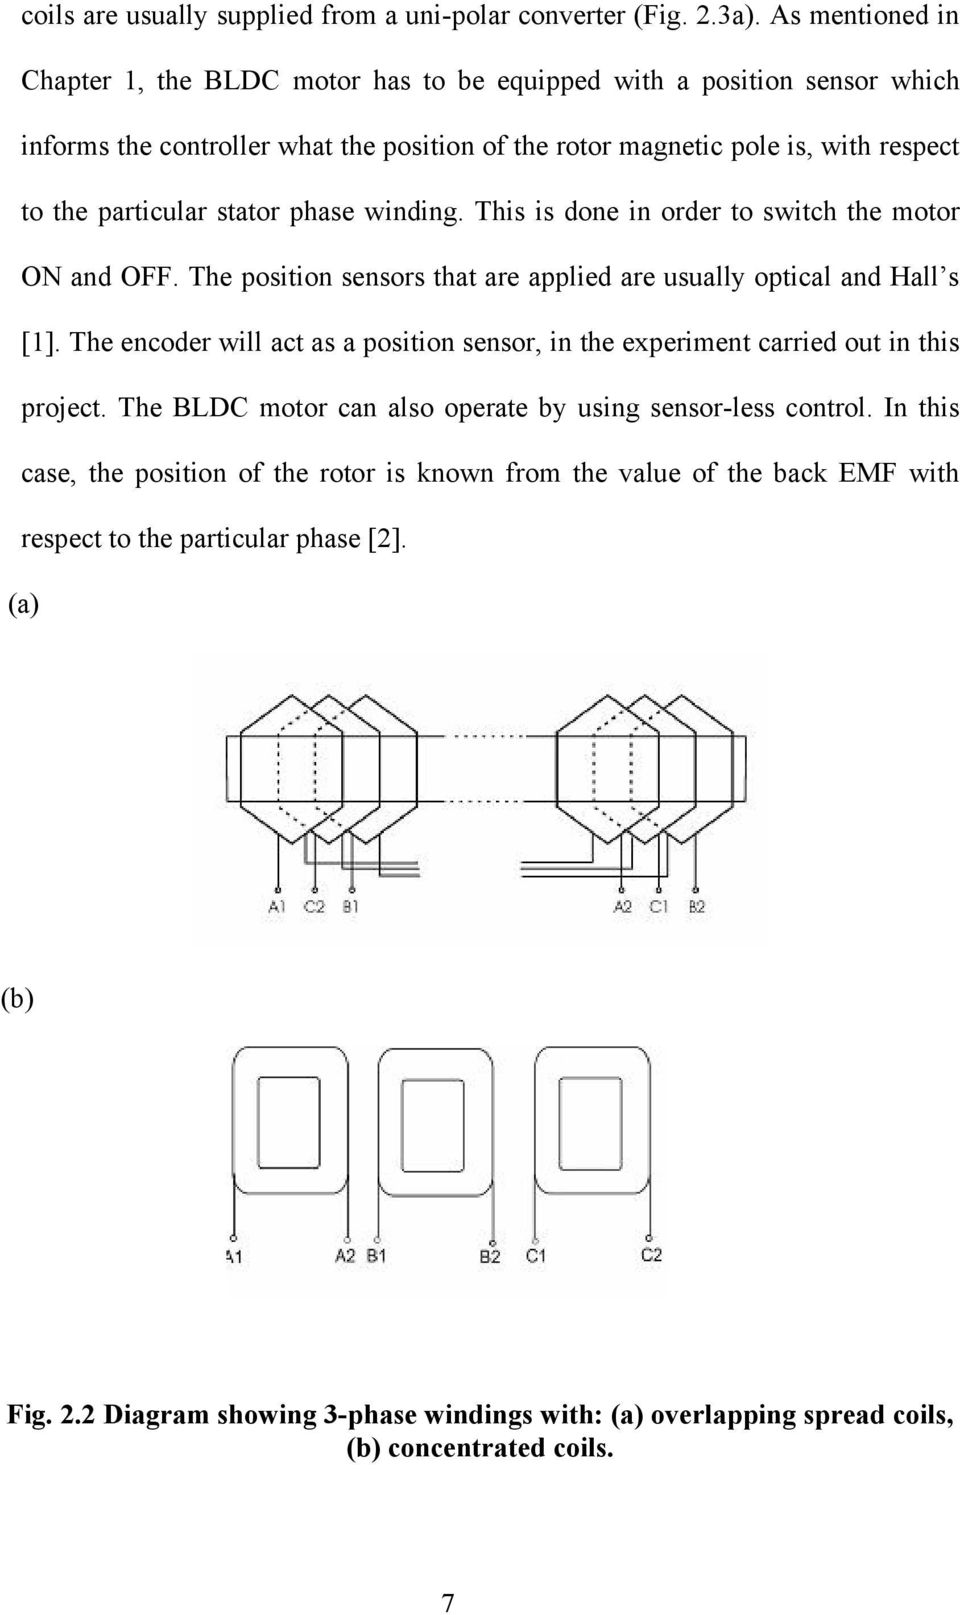 Thesis on bldc motor control